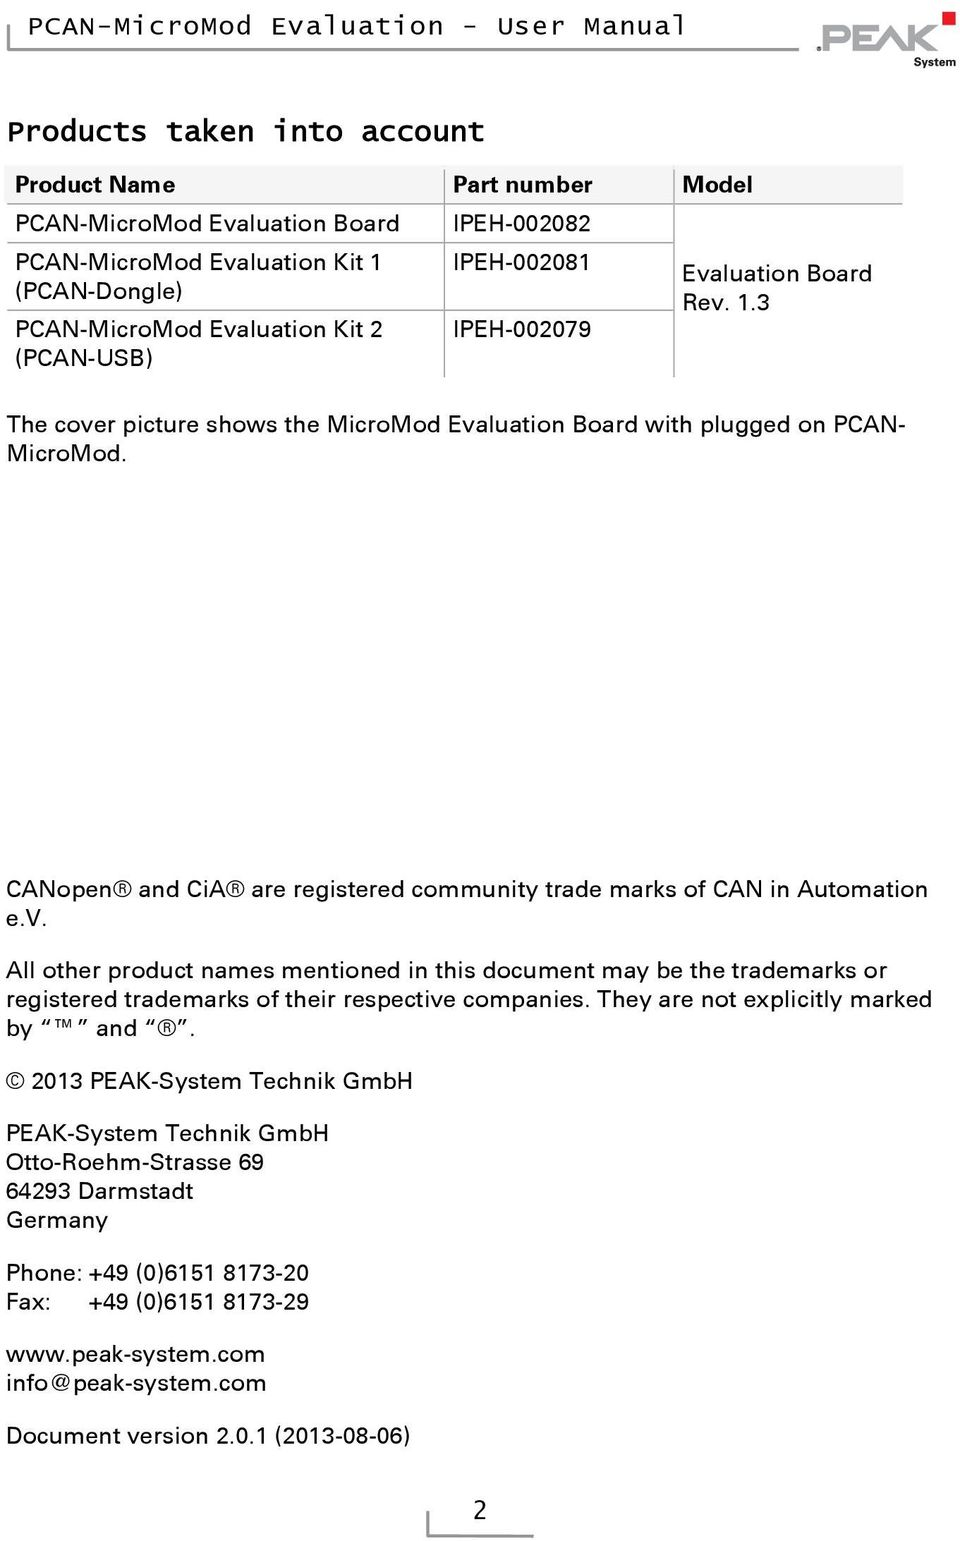 CANopen and CiA are registered community trade marks of CAN in Automation e.v.